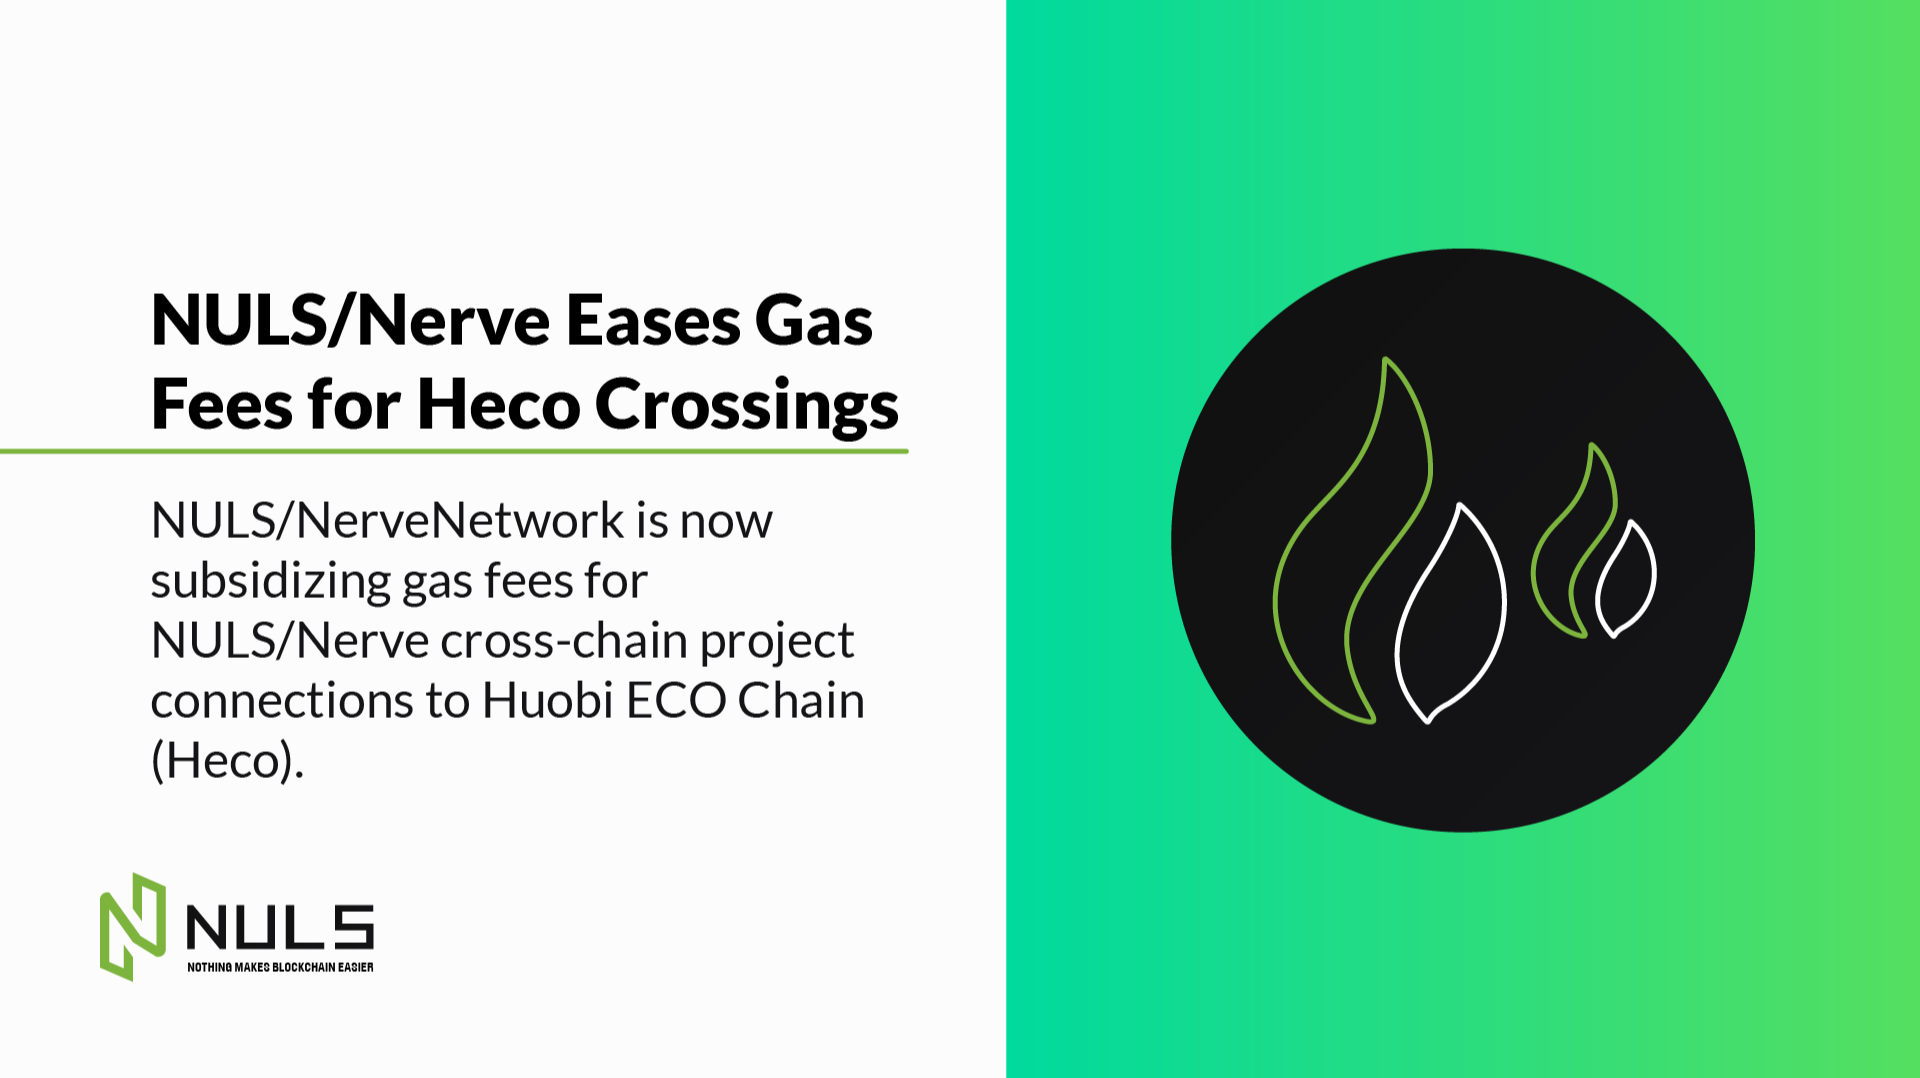 NULS/Nerve Eases Gas Fees for Heco Crossings